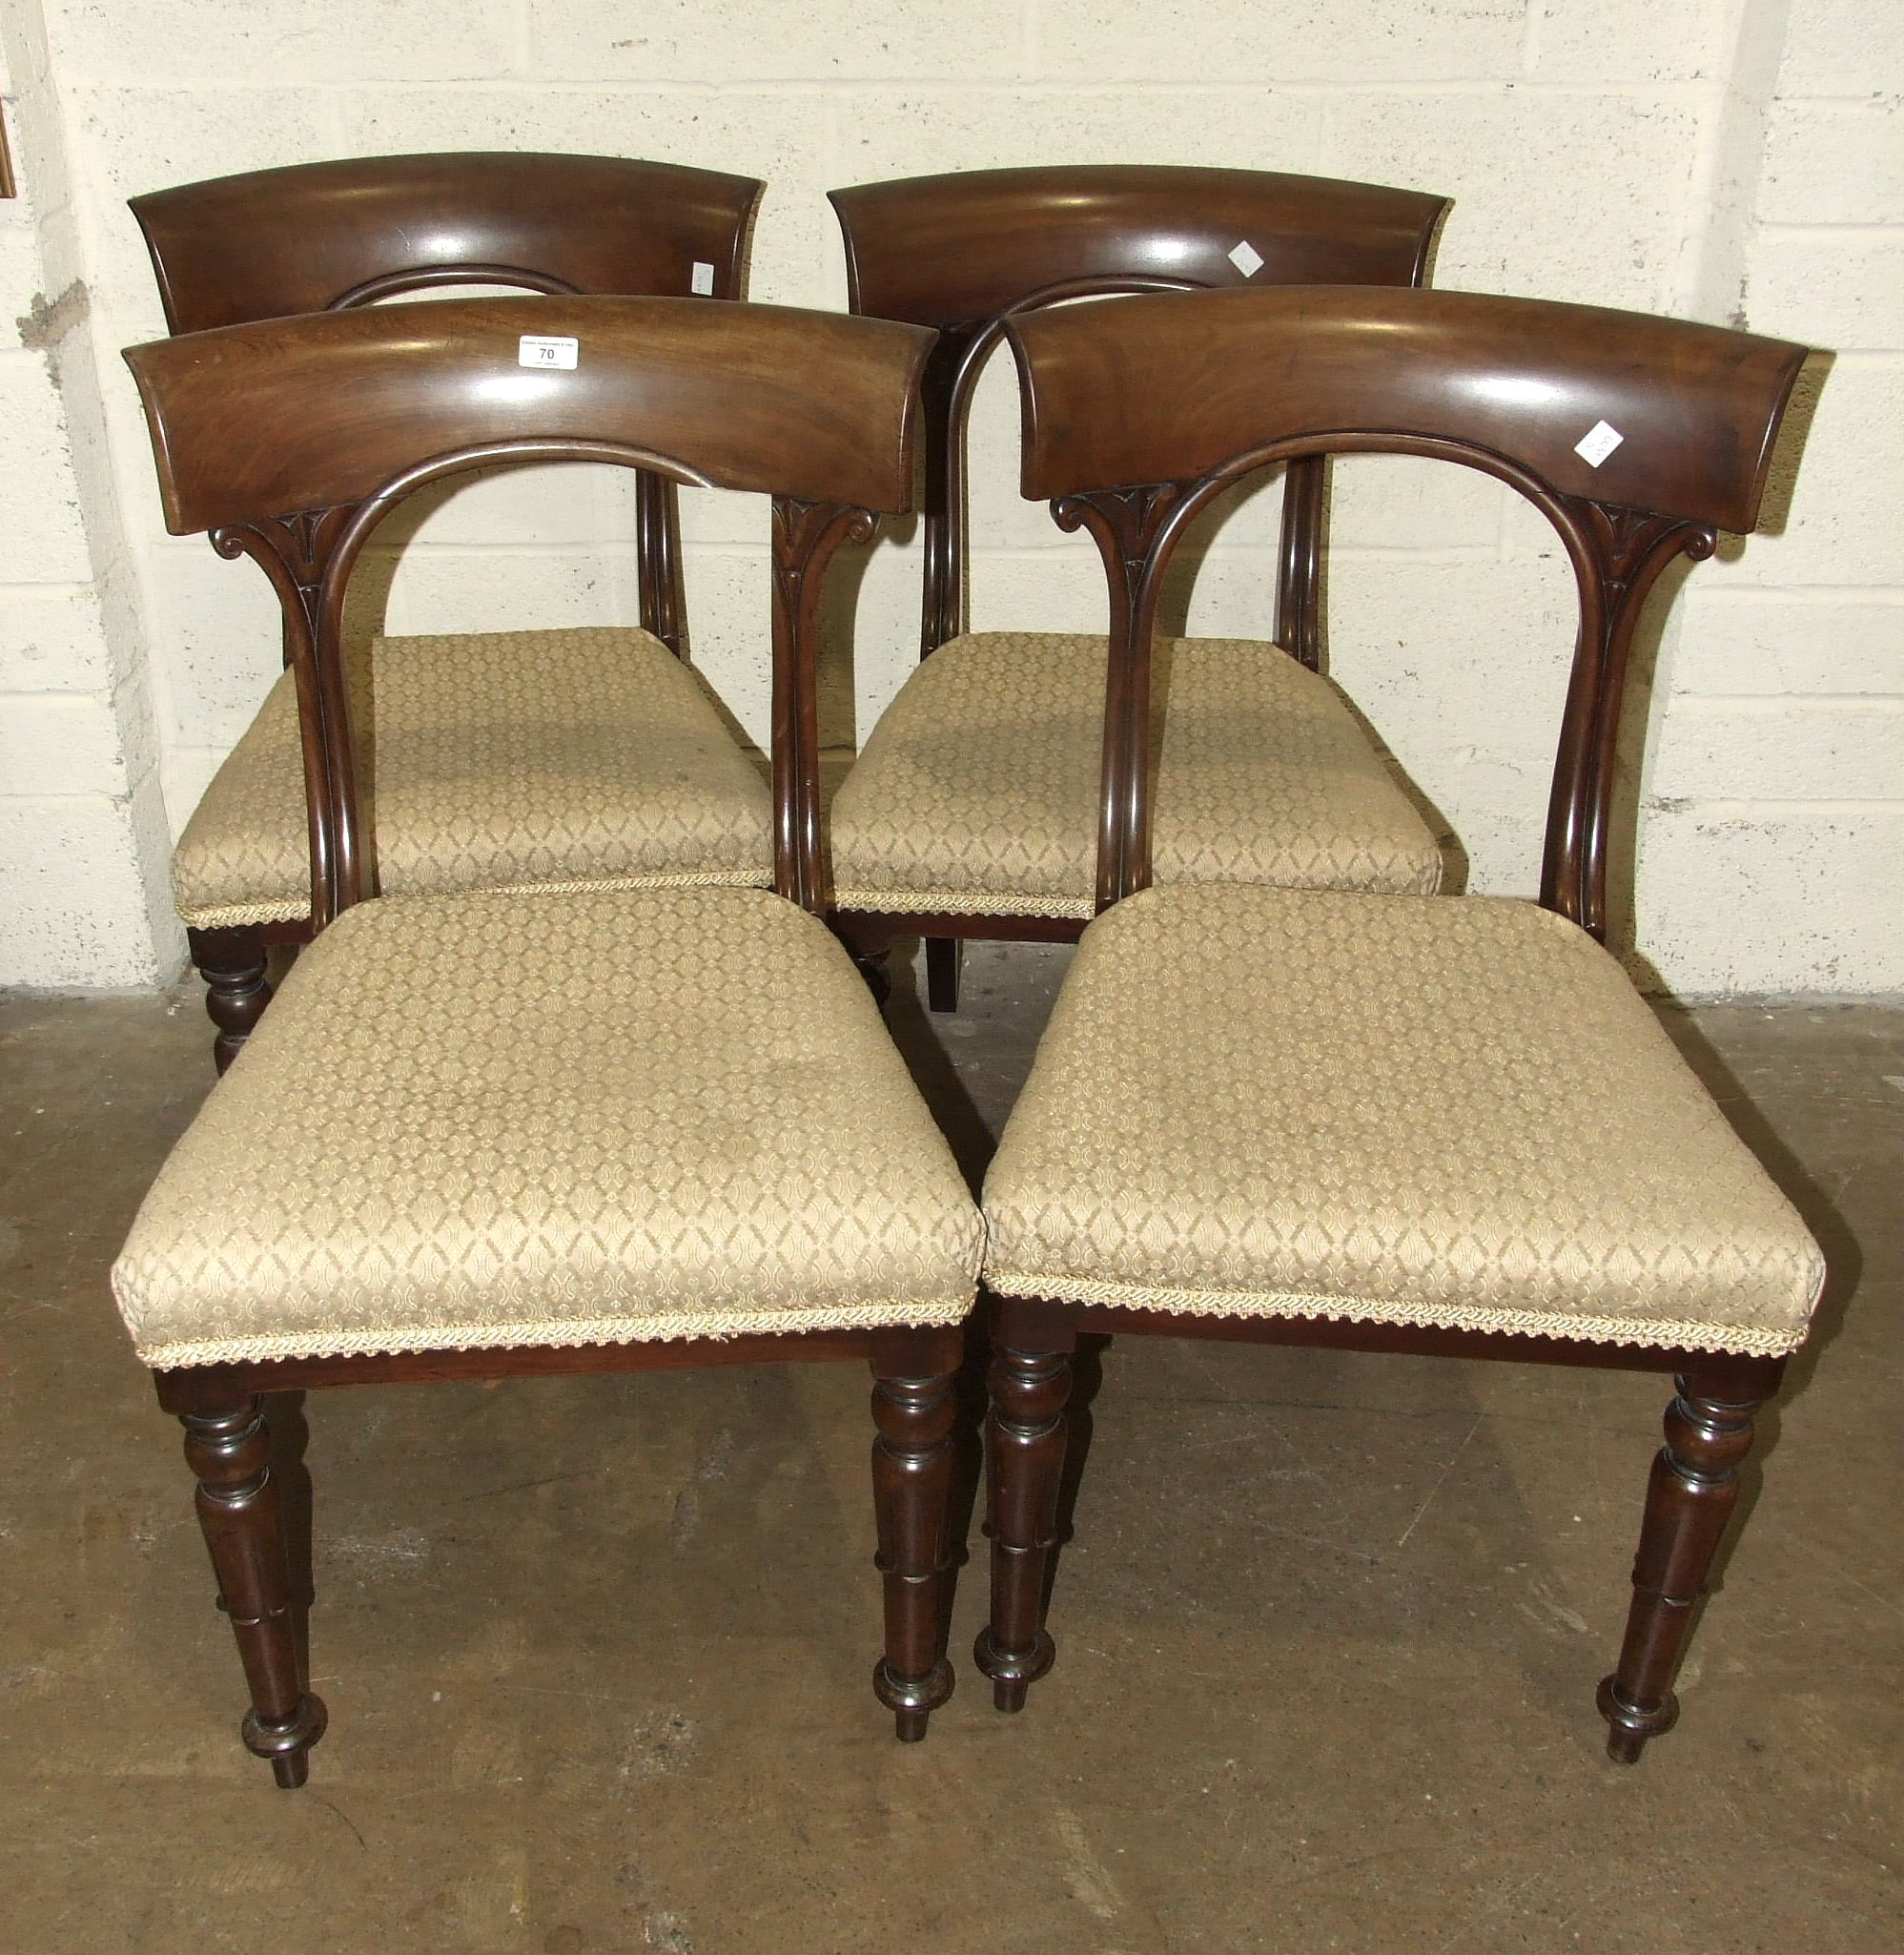 A set of four early-Victorian mahogany dining chairs, with curved top rails and open backs, also - Image 2 of 3